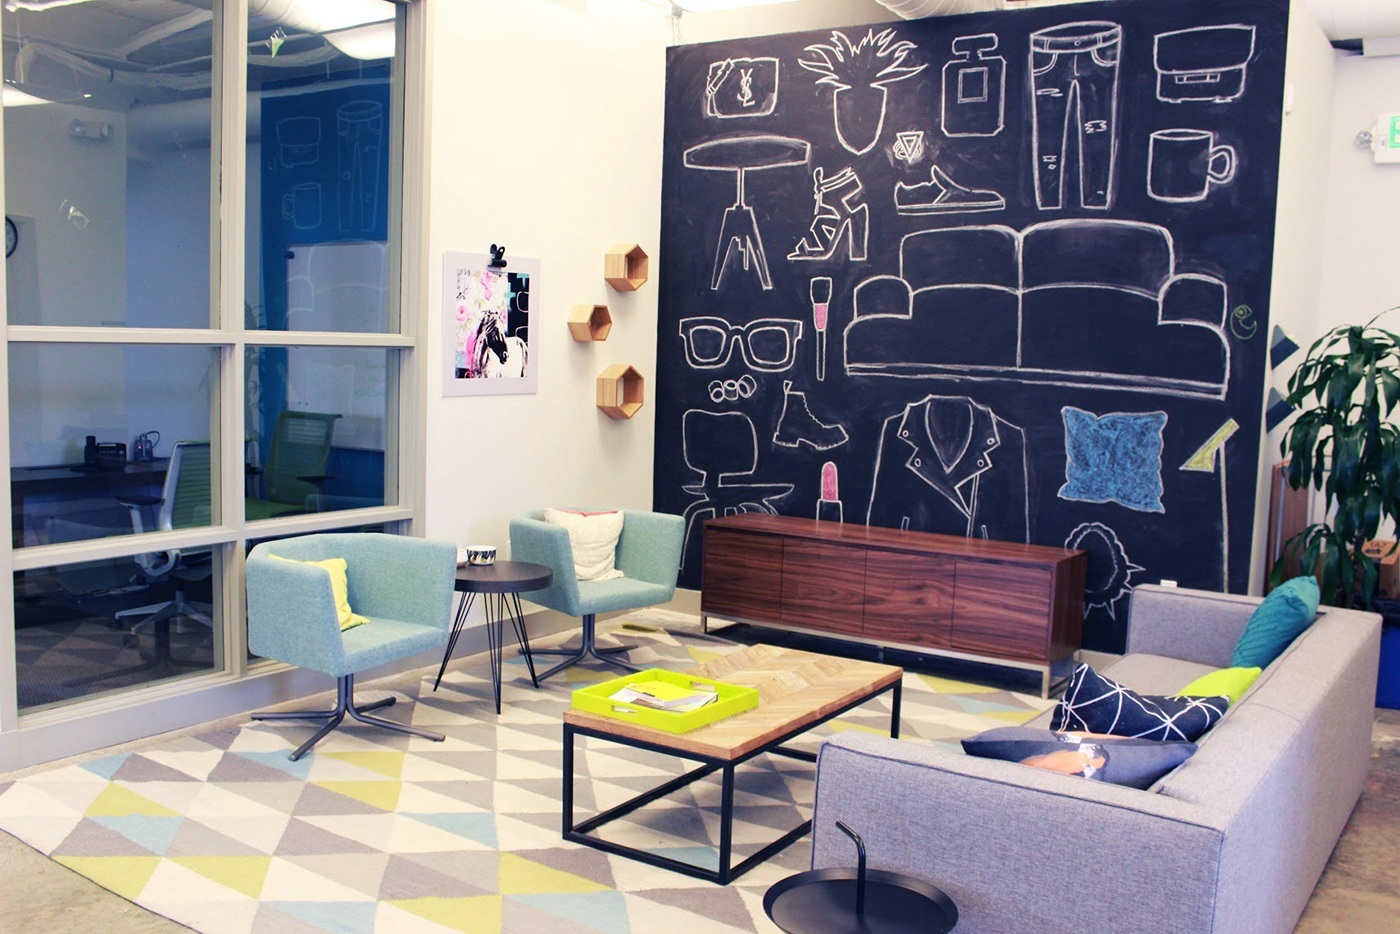 An Exclusive Look Inside Polyvore's Mountain View Headquarters